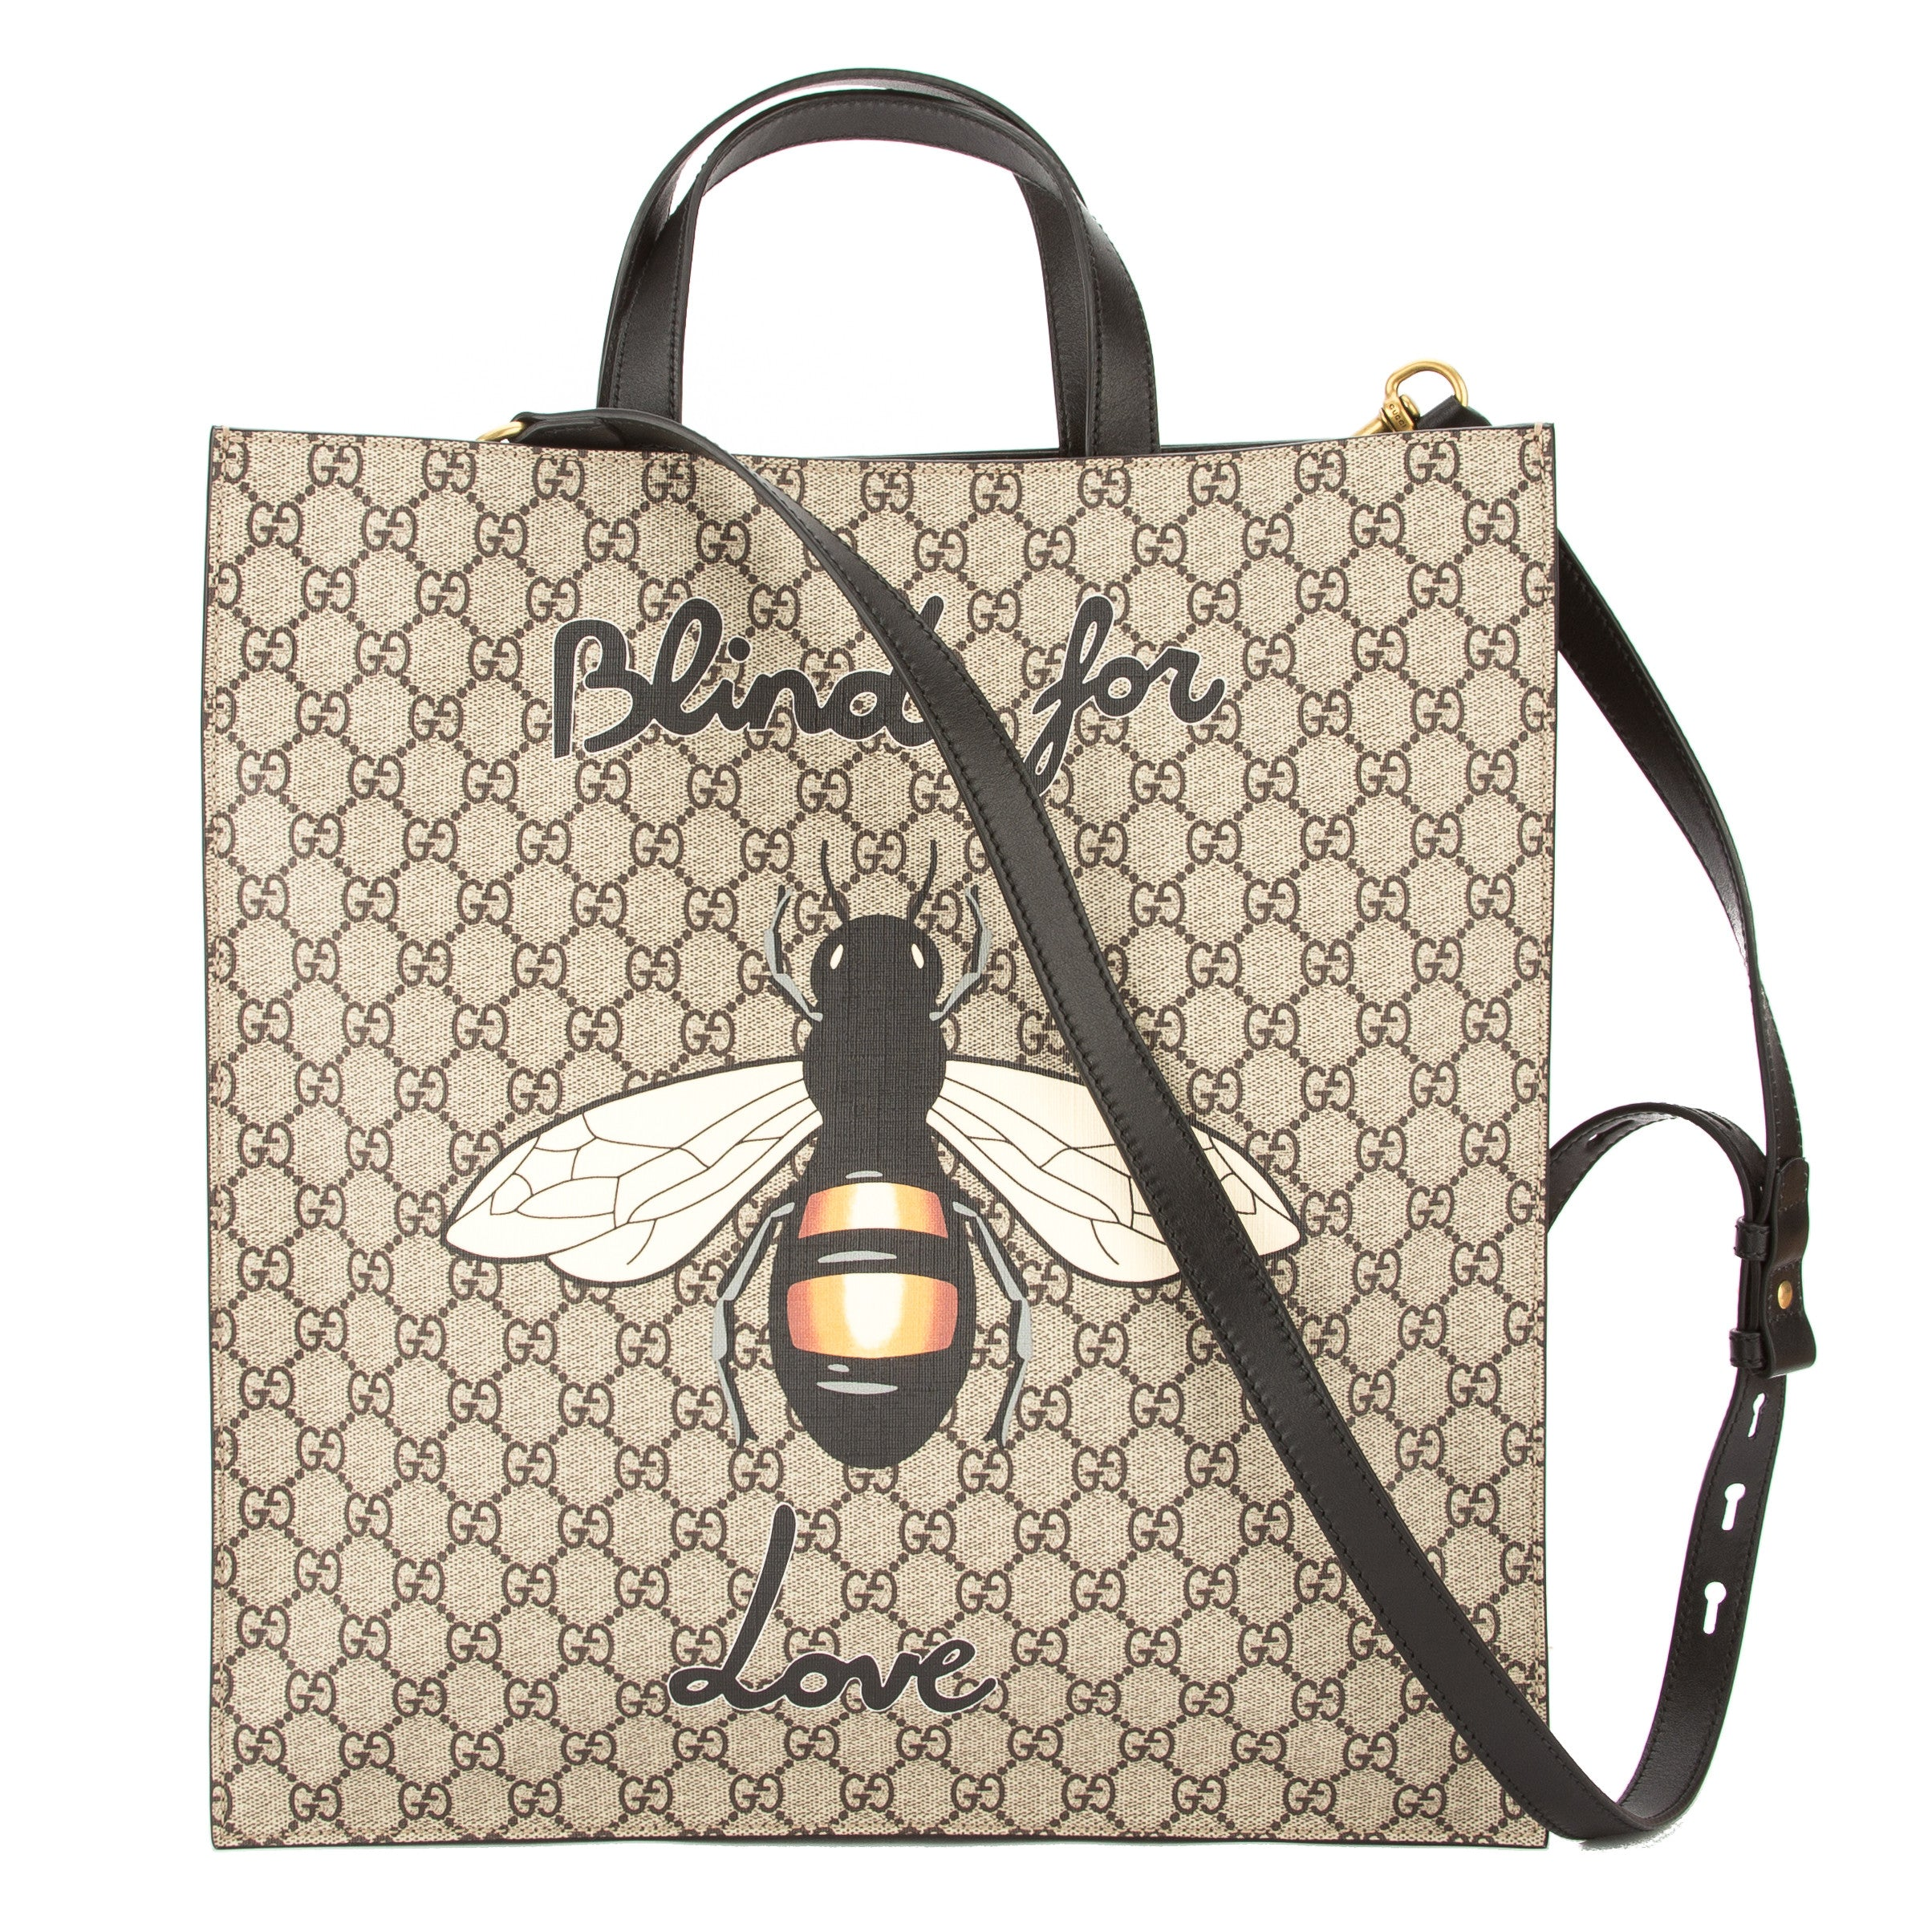 ff7de140eea Gucci Brown Leather Soft GG Supreme Canvas Bee Print Tote (New with ...